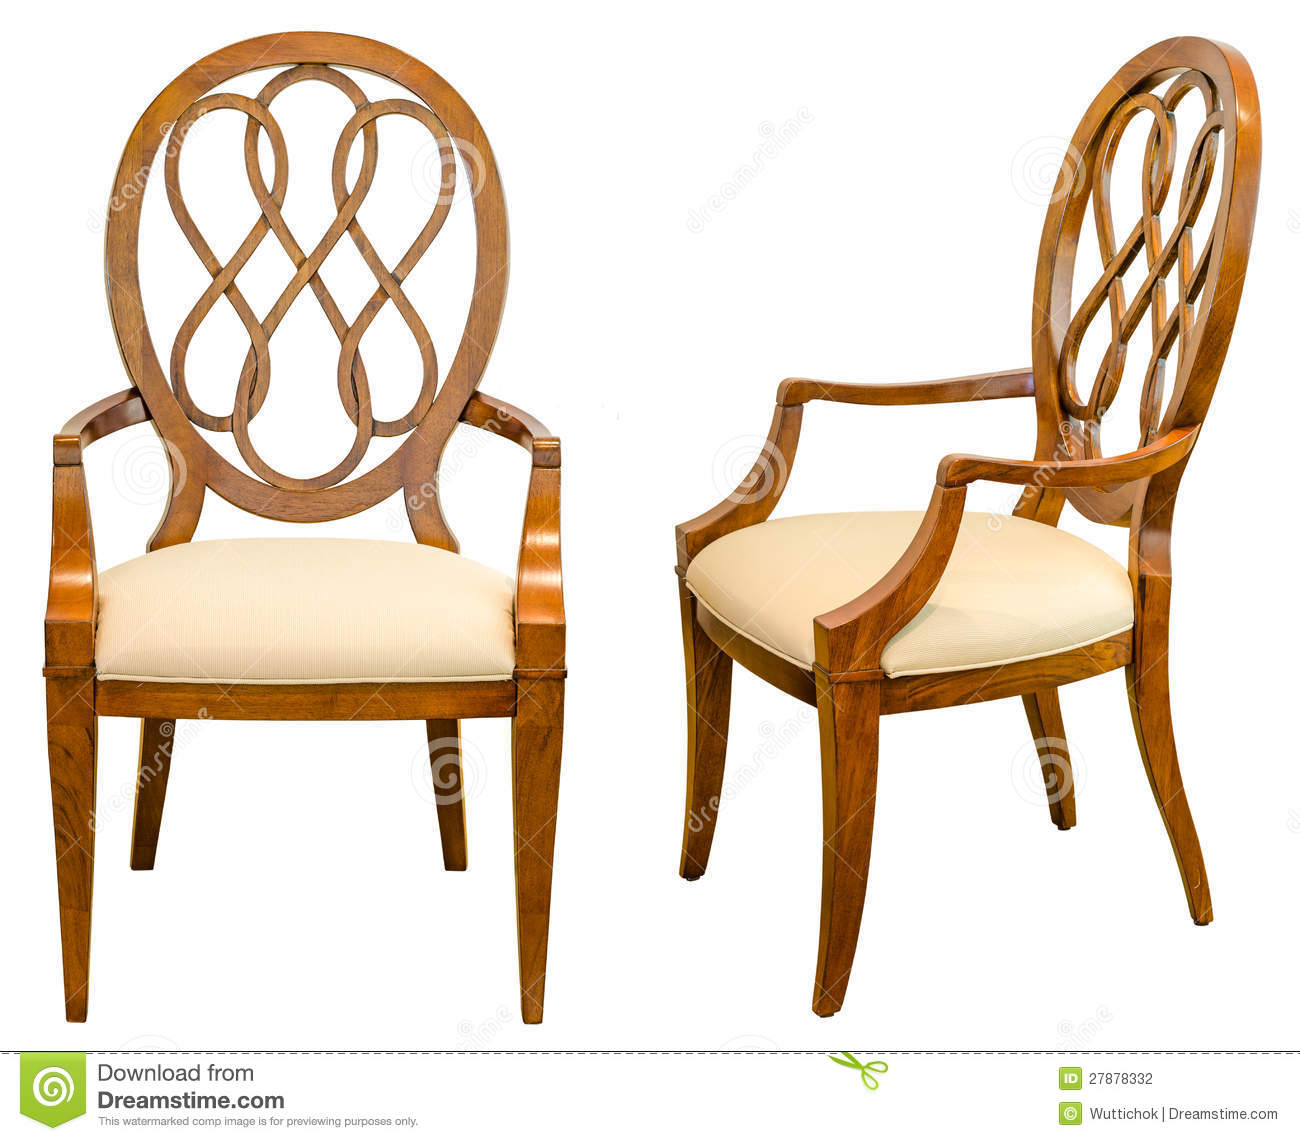 Modern wood chair with arms - Modern Style Wooden Chair Stock Photography Image 27878332